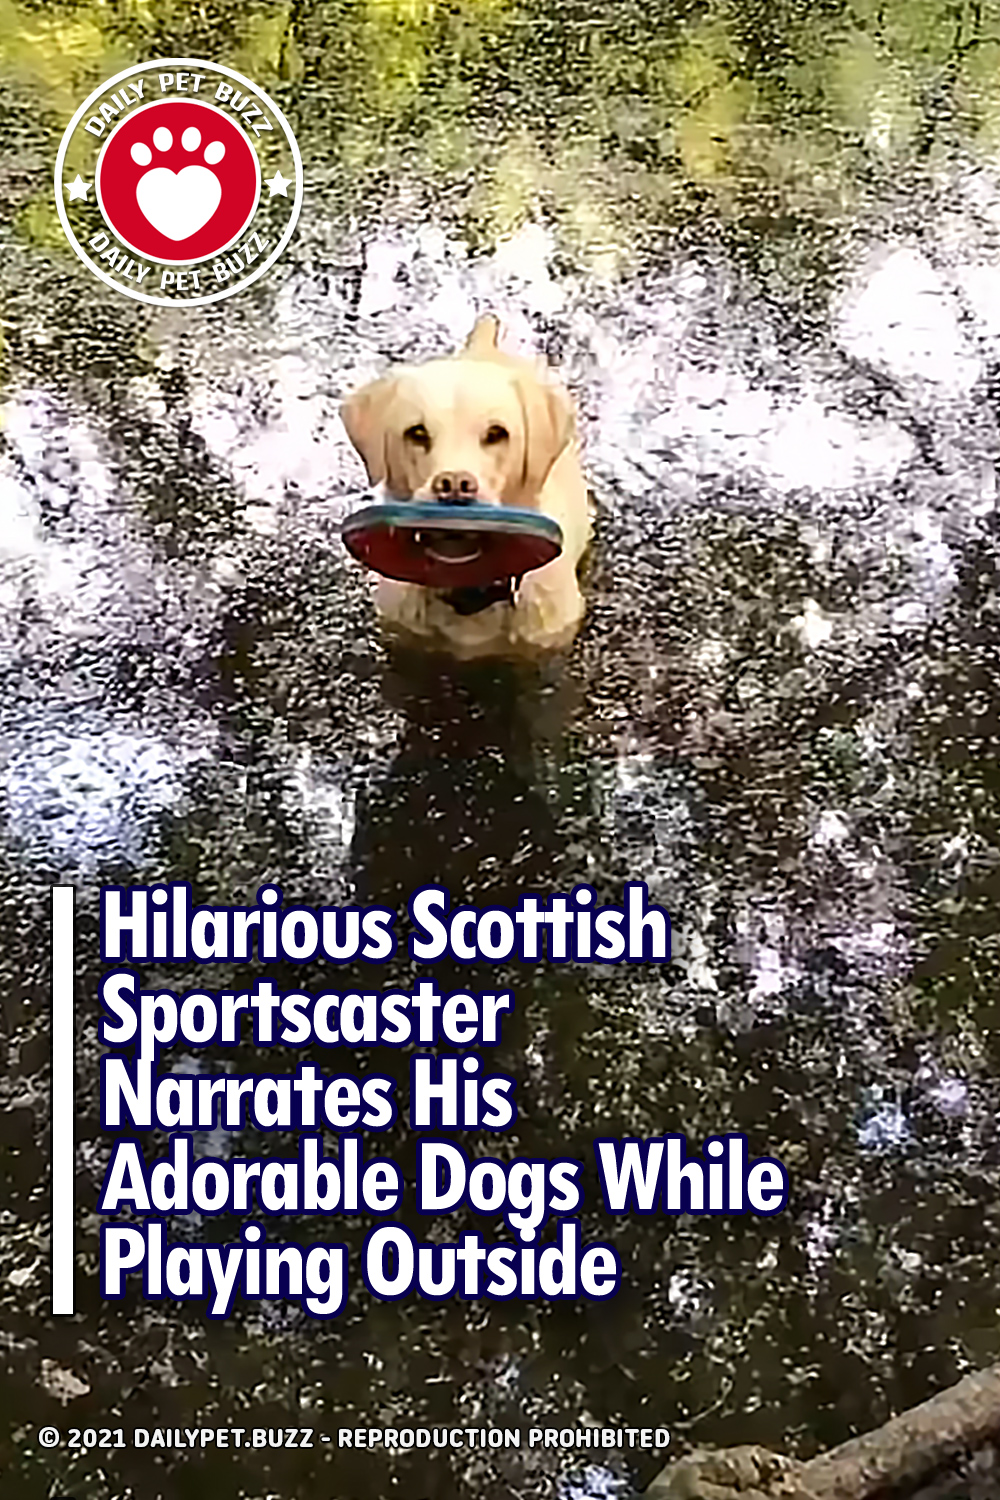 Hilarious Scottish Sportscaster Narrates His Adorable Dogs While Playing Outside